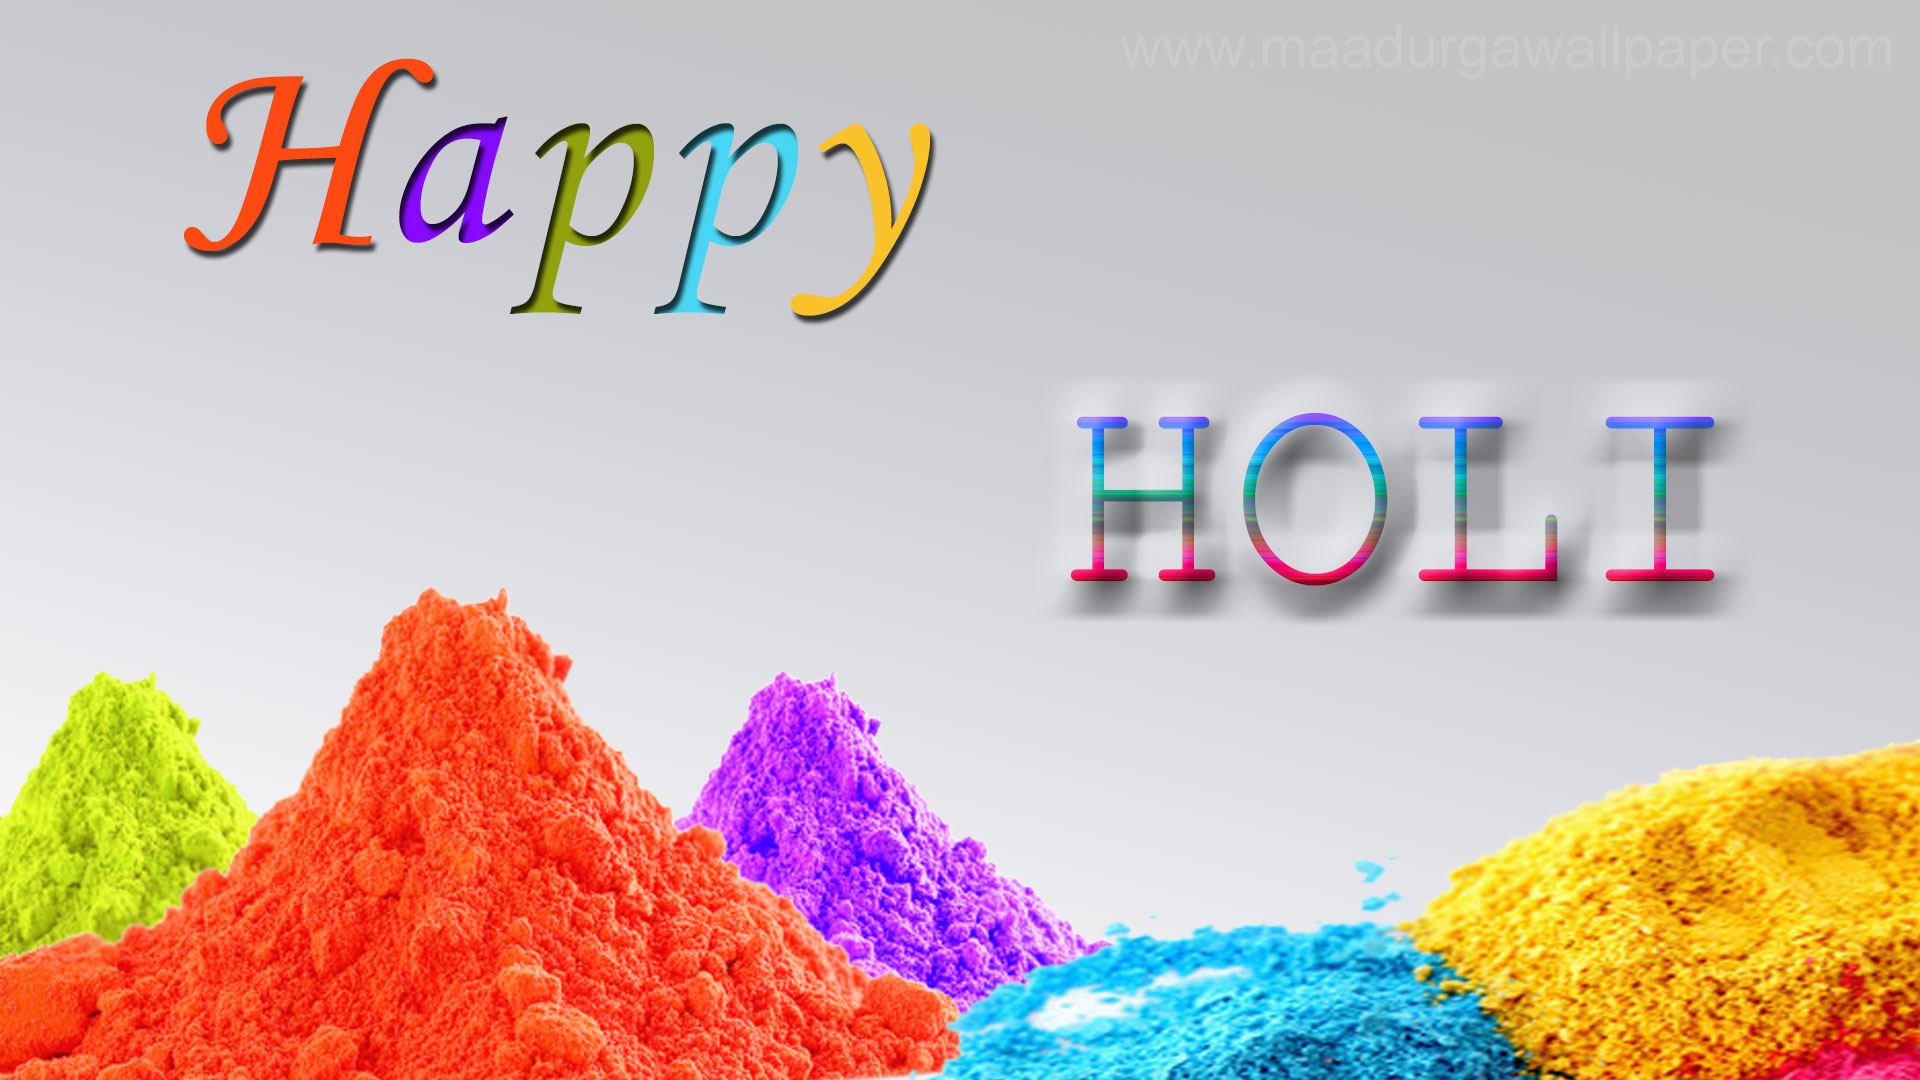 Happy Holi Images HD Wallpapers For Whatsapp DP FB 1920x1080